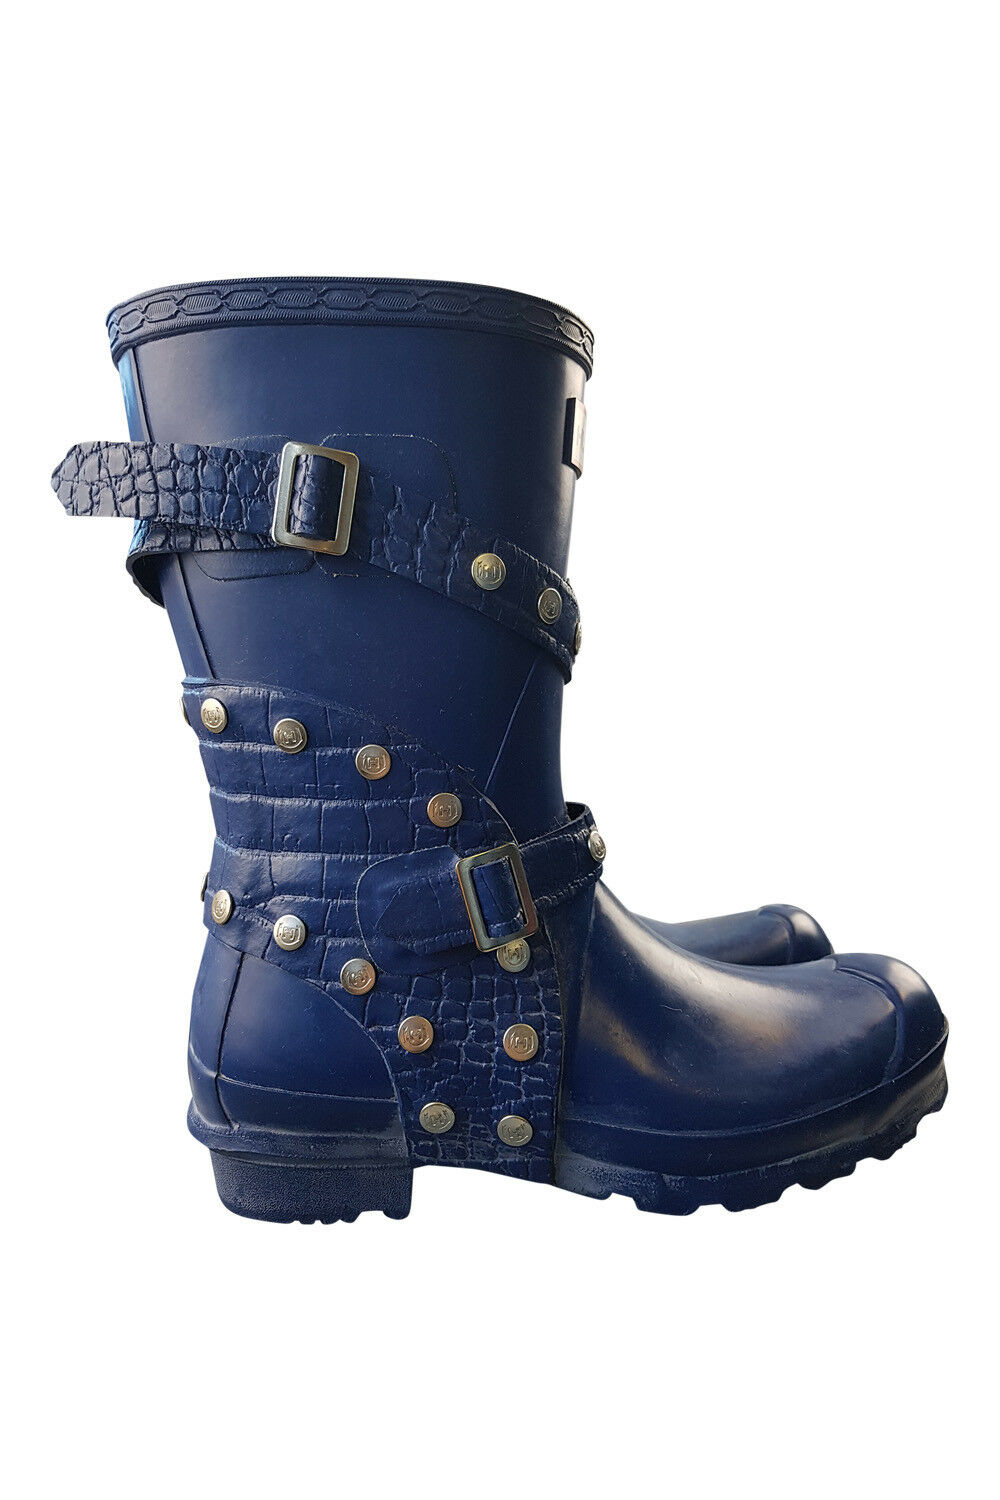 HUNTER LIMITED EDITION Blau Blau Blau FESTIVAL Stiefel SHORT (4) 136eb8